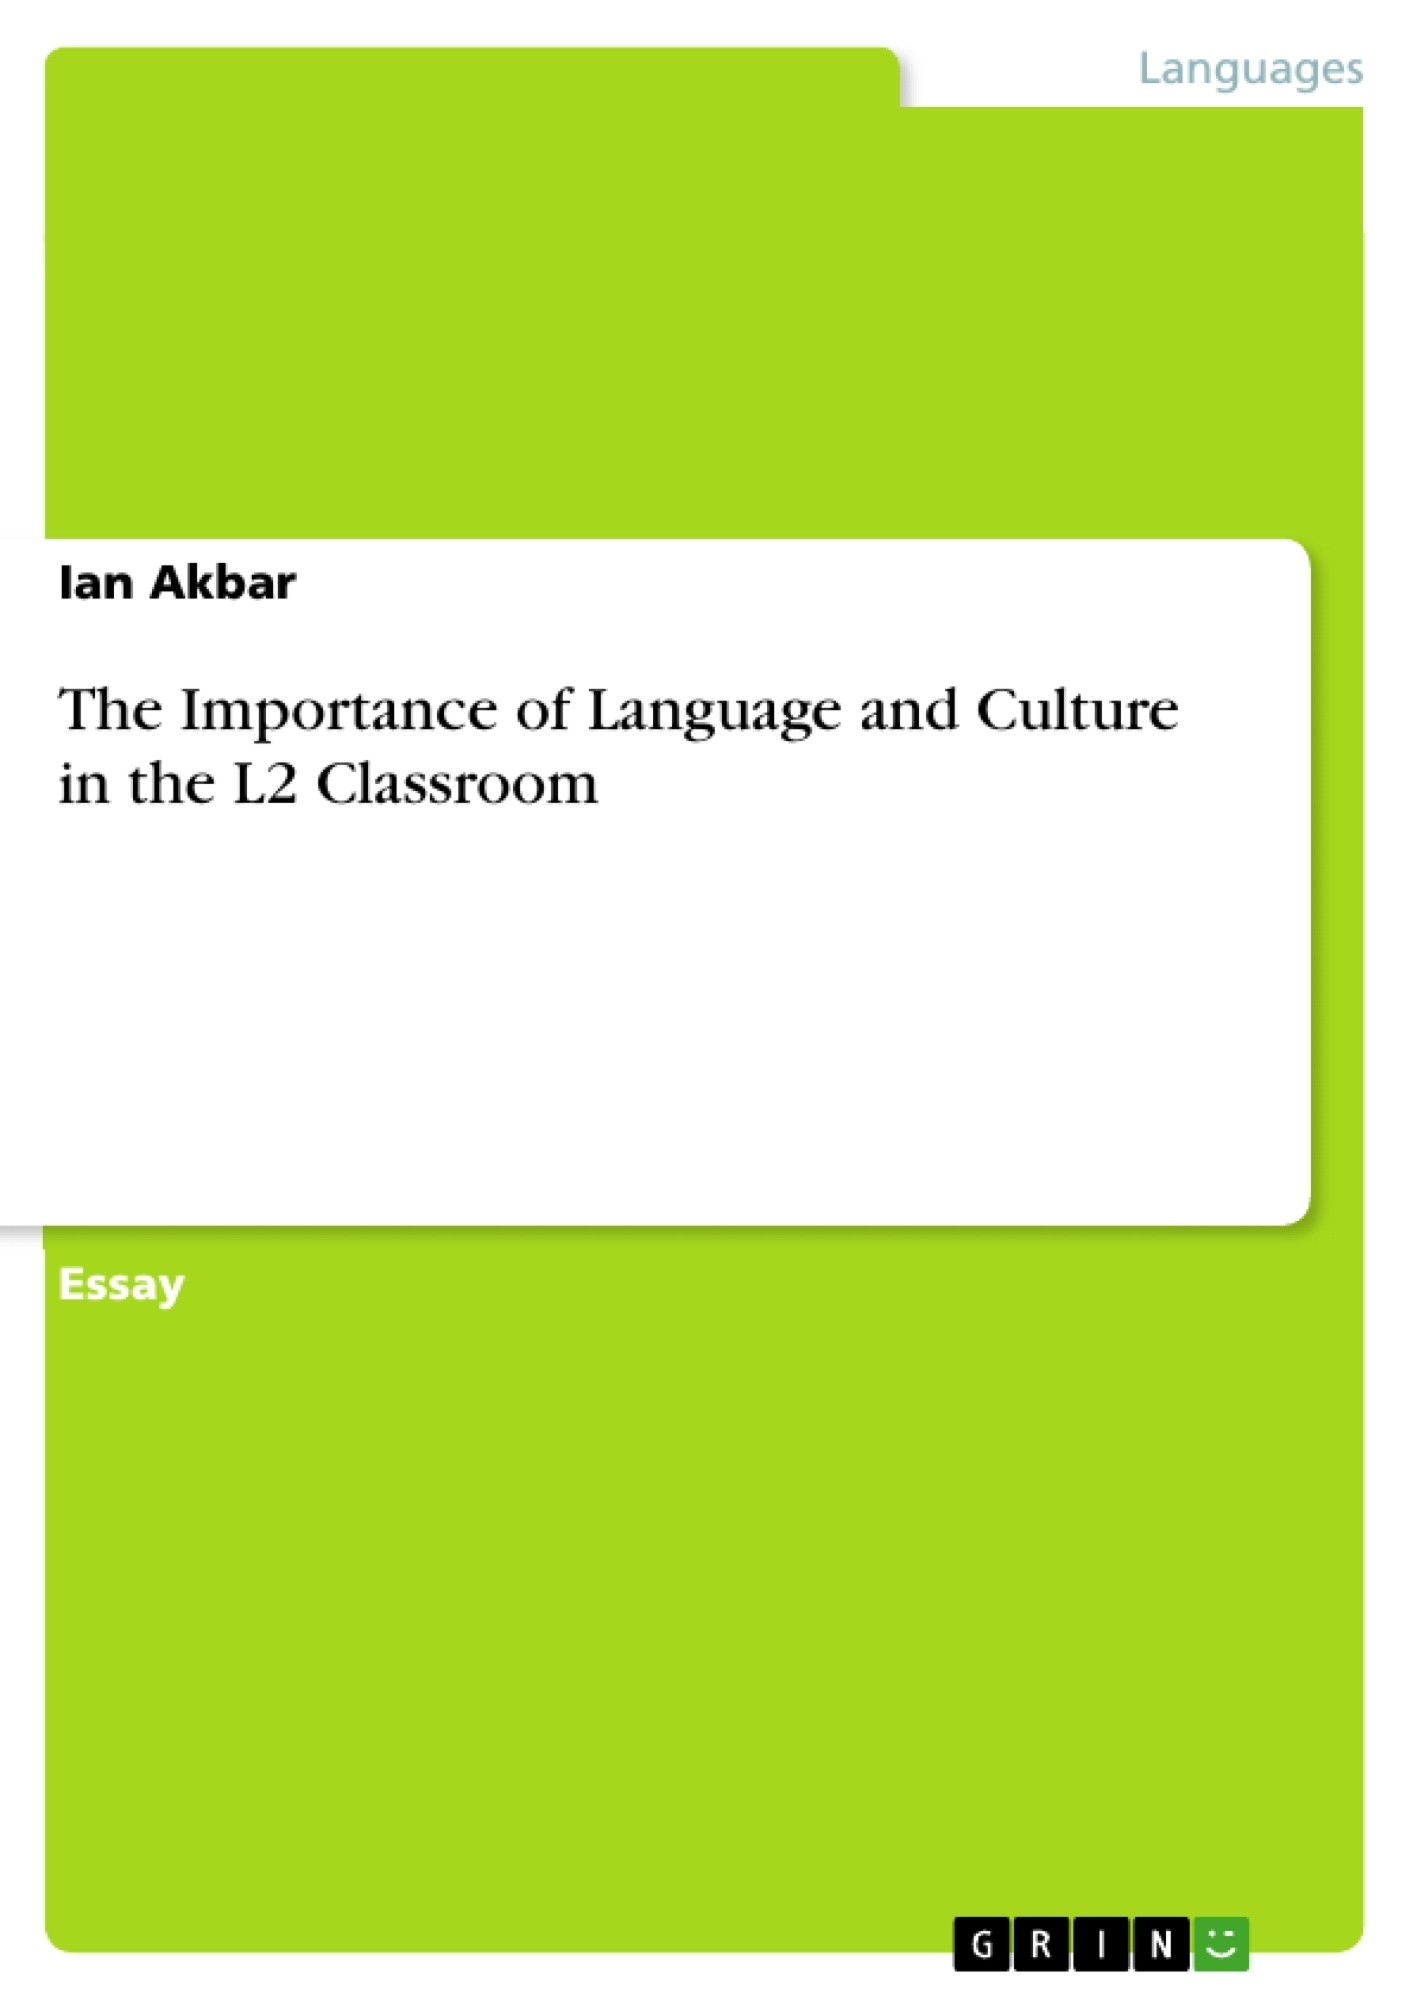 the importance of language and culture in the l classroom upload your own papers earn money and win an iphone 7